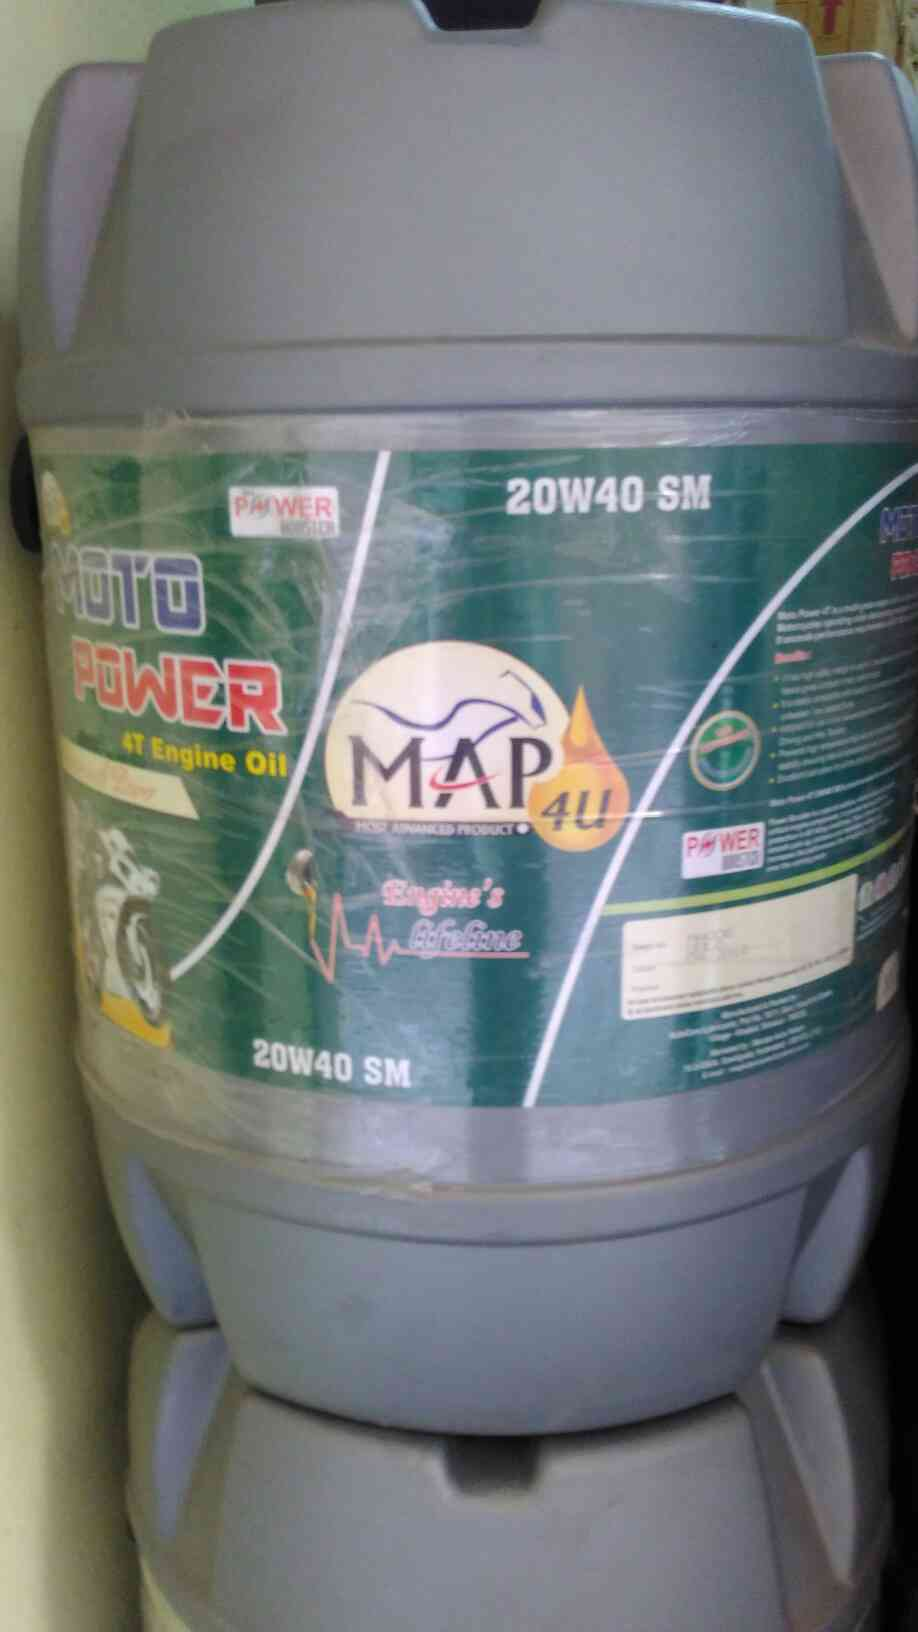 we are the engine oil suppliers in Hyderabad, we provide best engine oil dealers in Hyderabad. 4t engine oil with best quality. we are the bulk engine oil suppliers in karimnagar